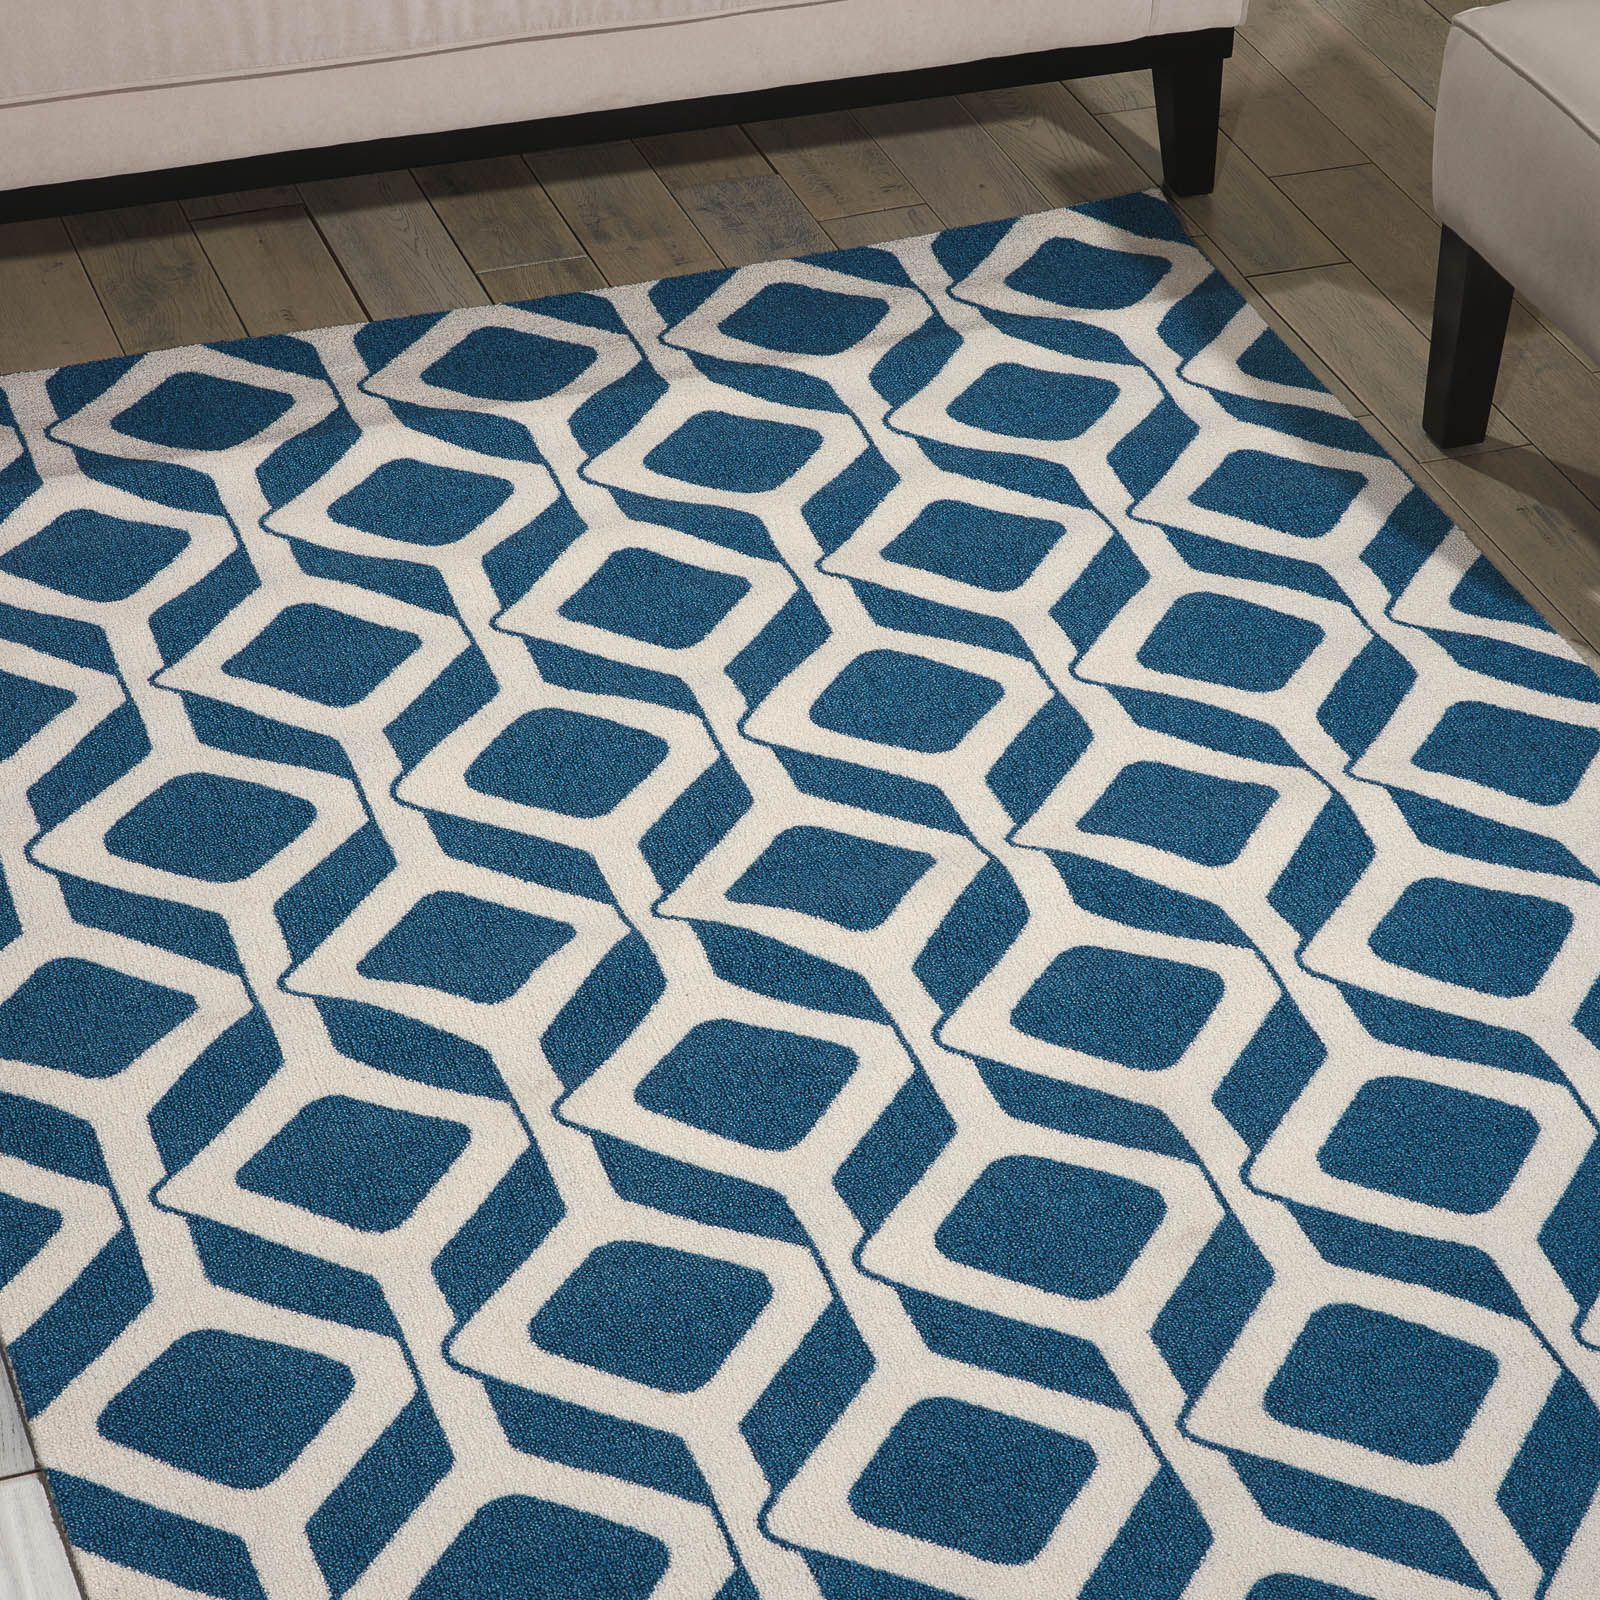 Enhance Rugs EN003 in Cadet Blue